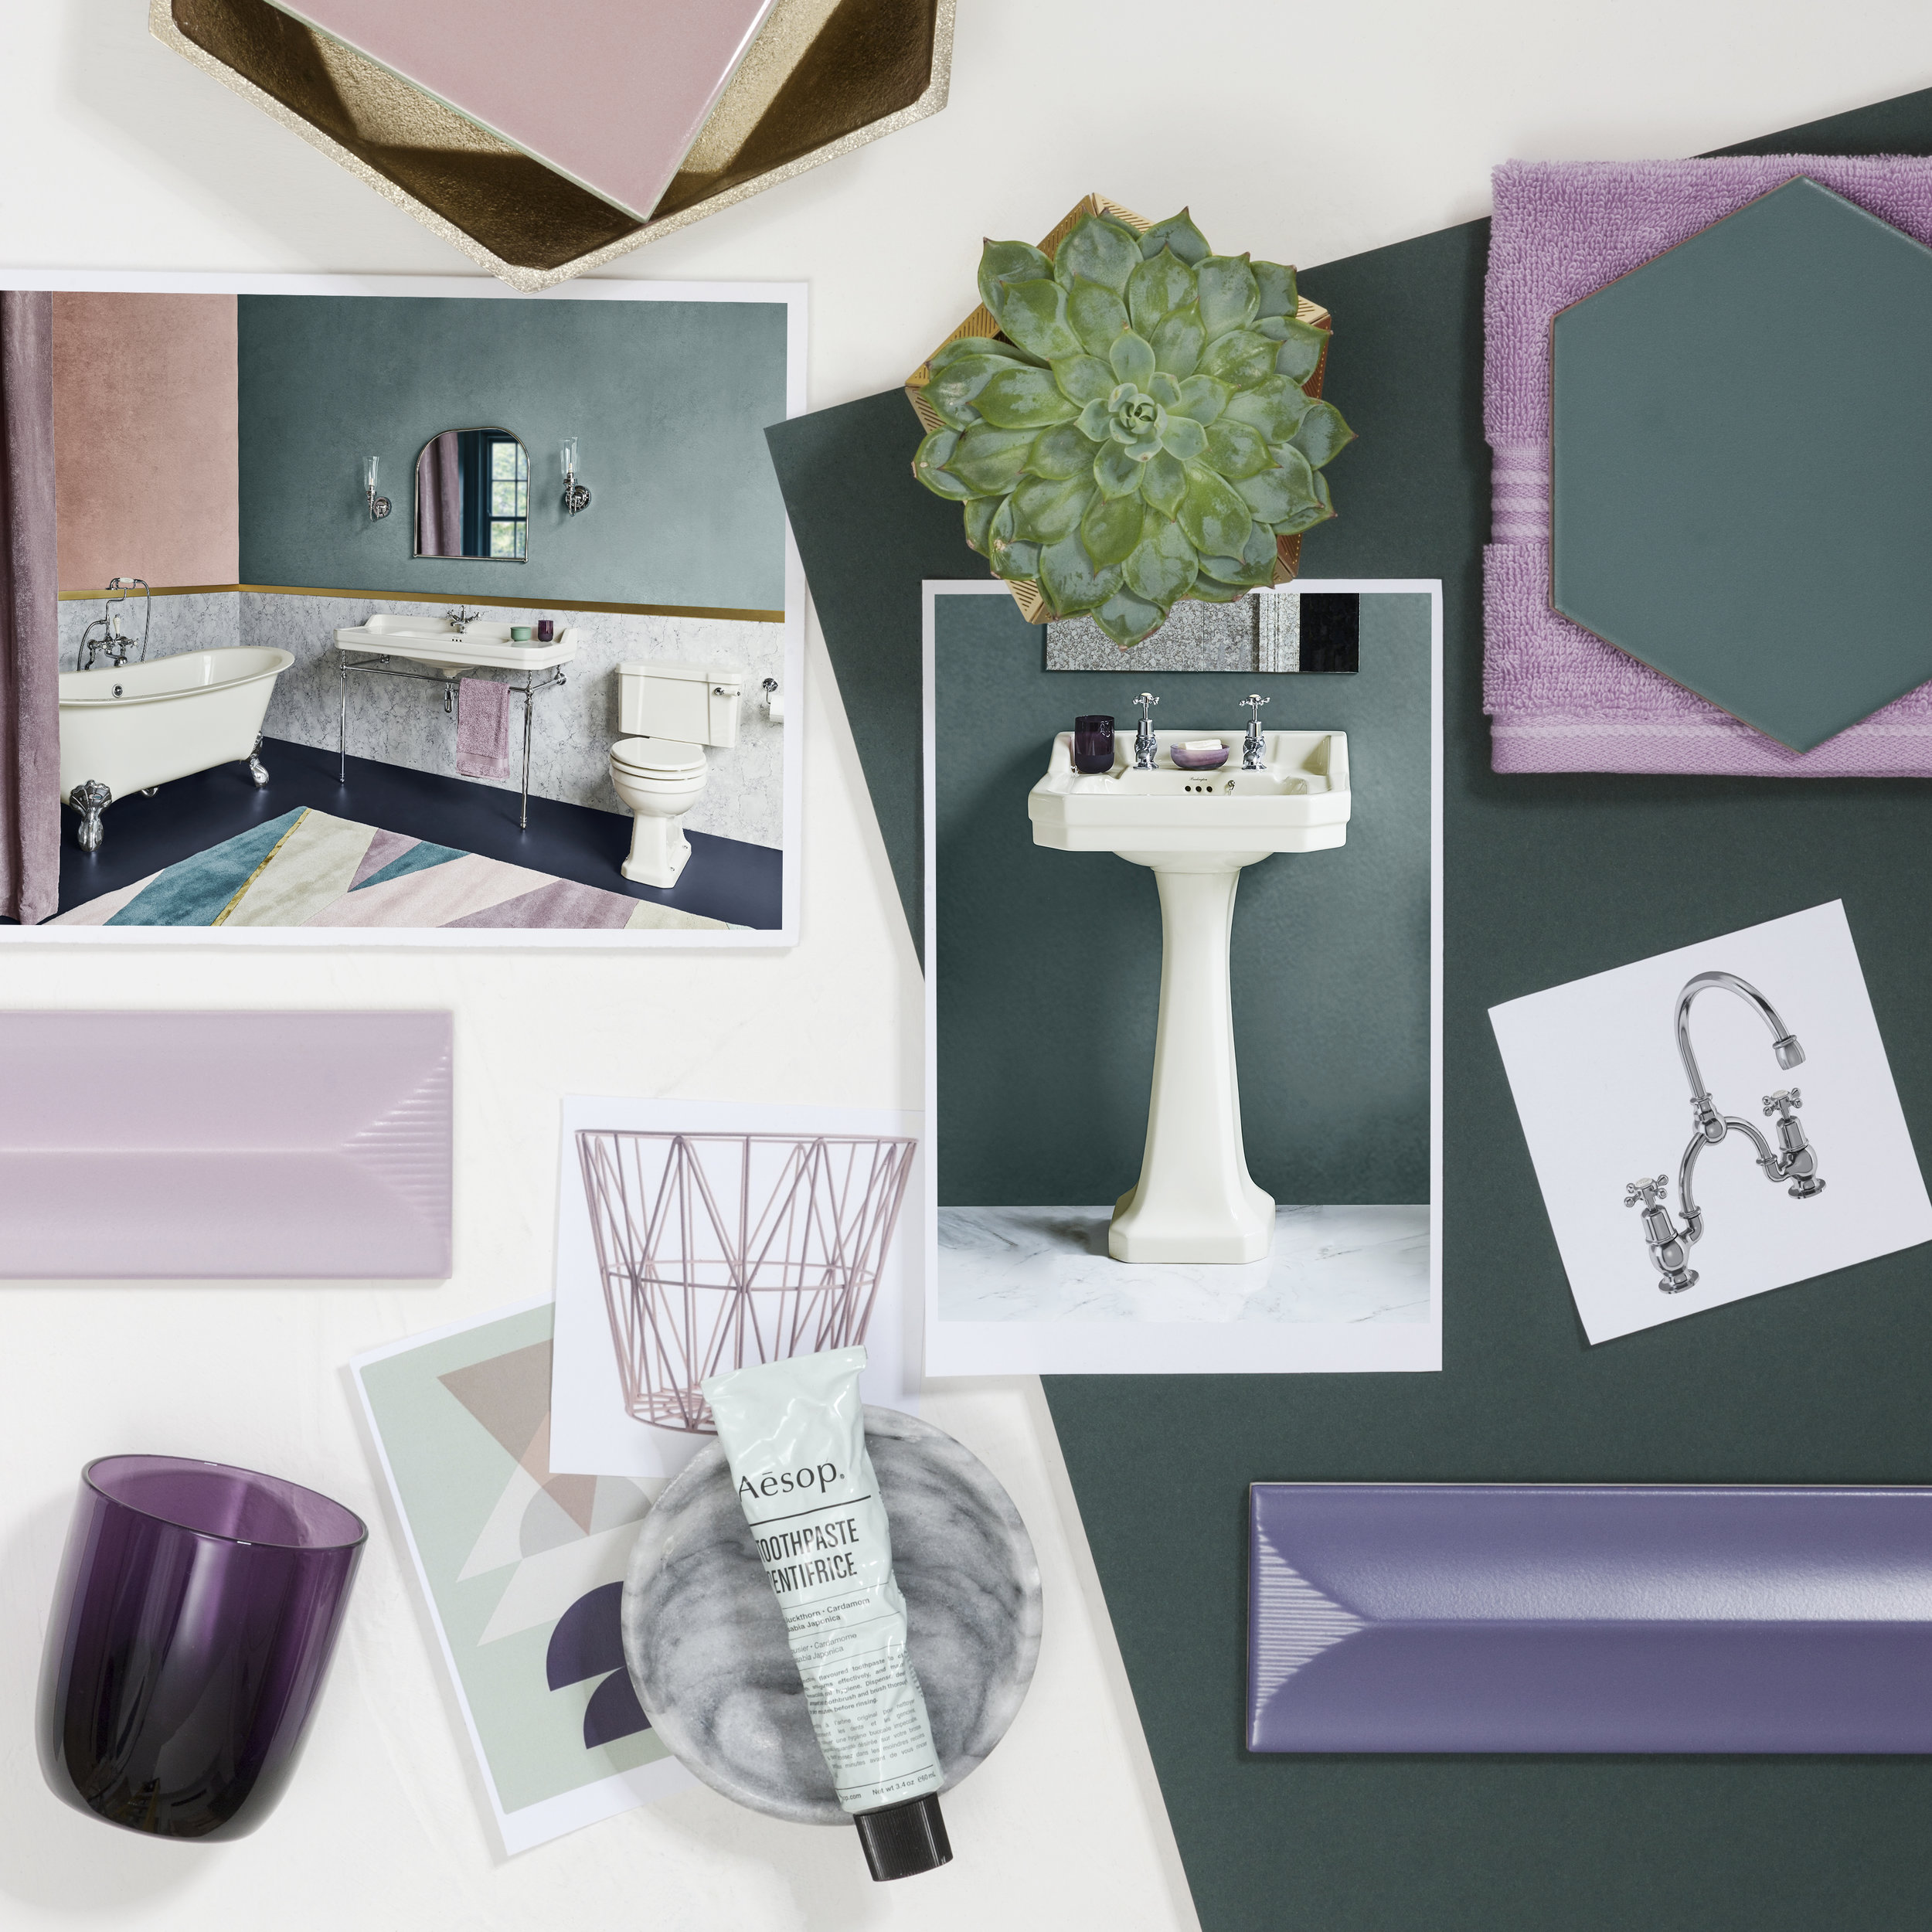 Lush greens and rich purples were paired with the Medici range in this moodboard by Burlington Bathrooms